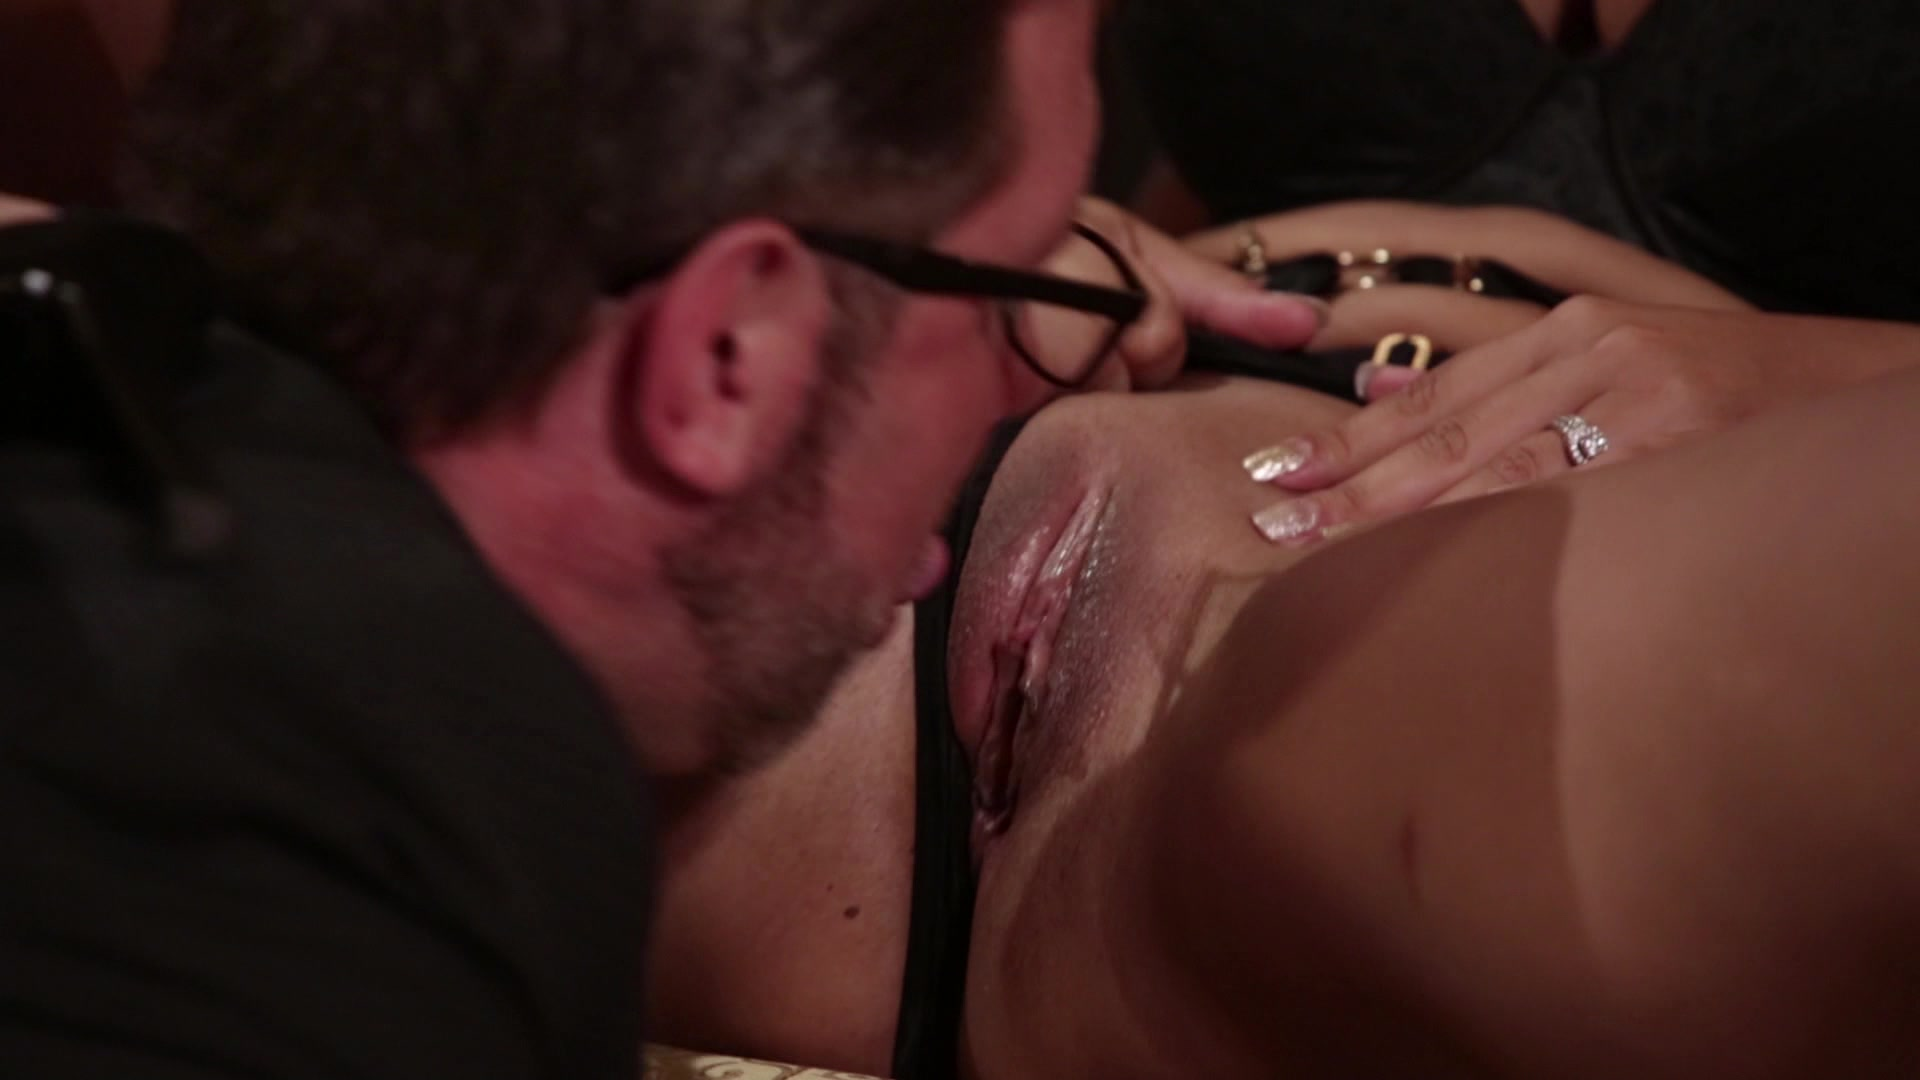 Scene with Jessica Drake - image 10 out of 20